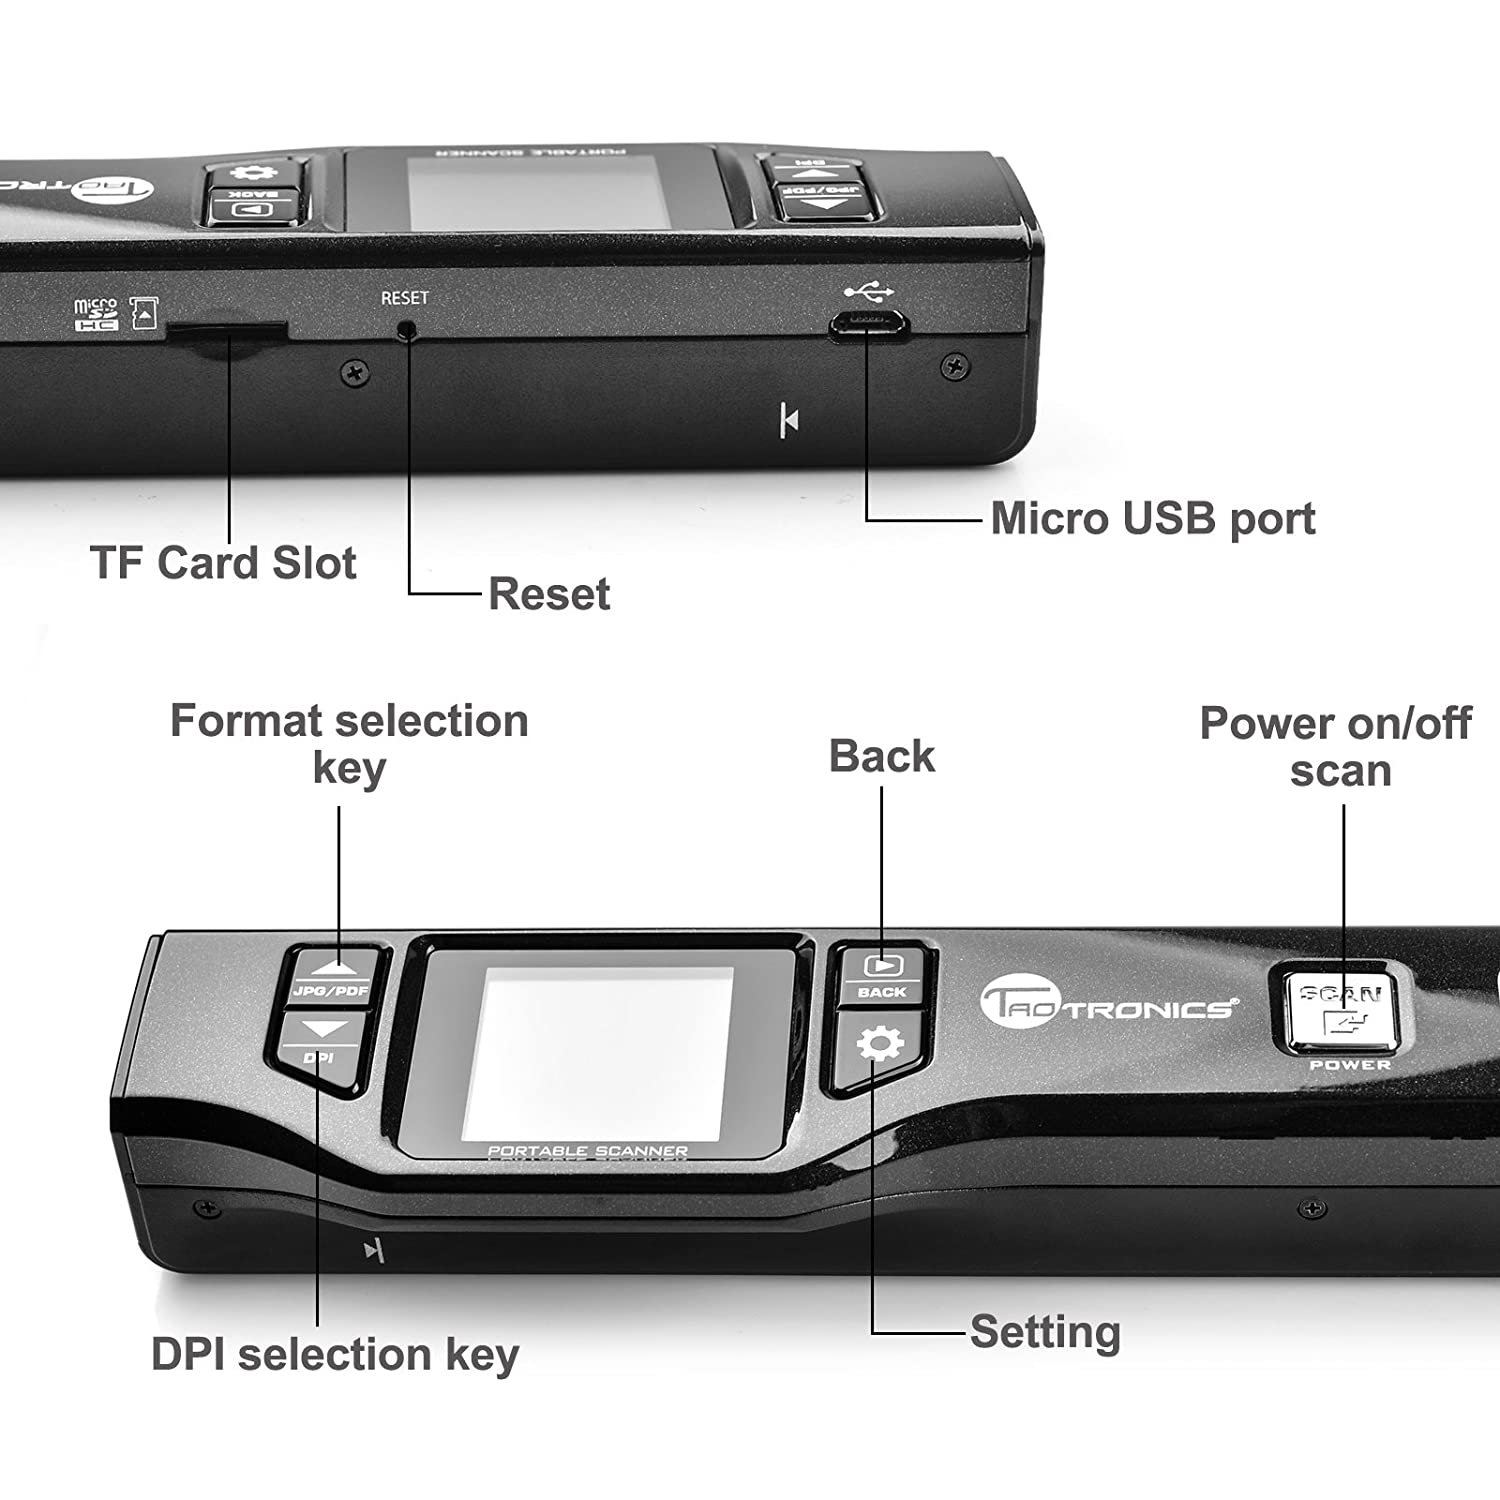 taotronics handheld mobile portable document scanner